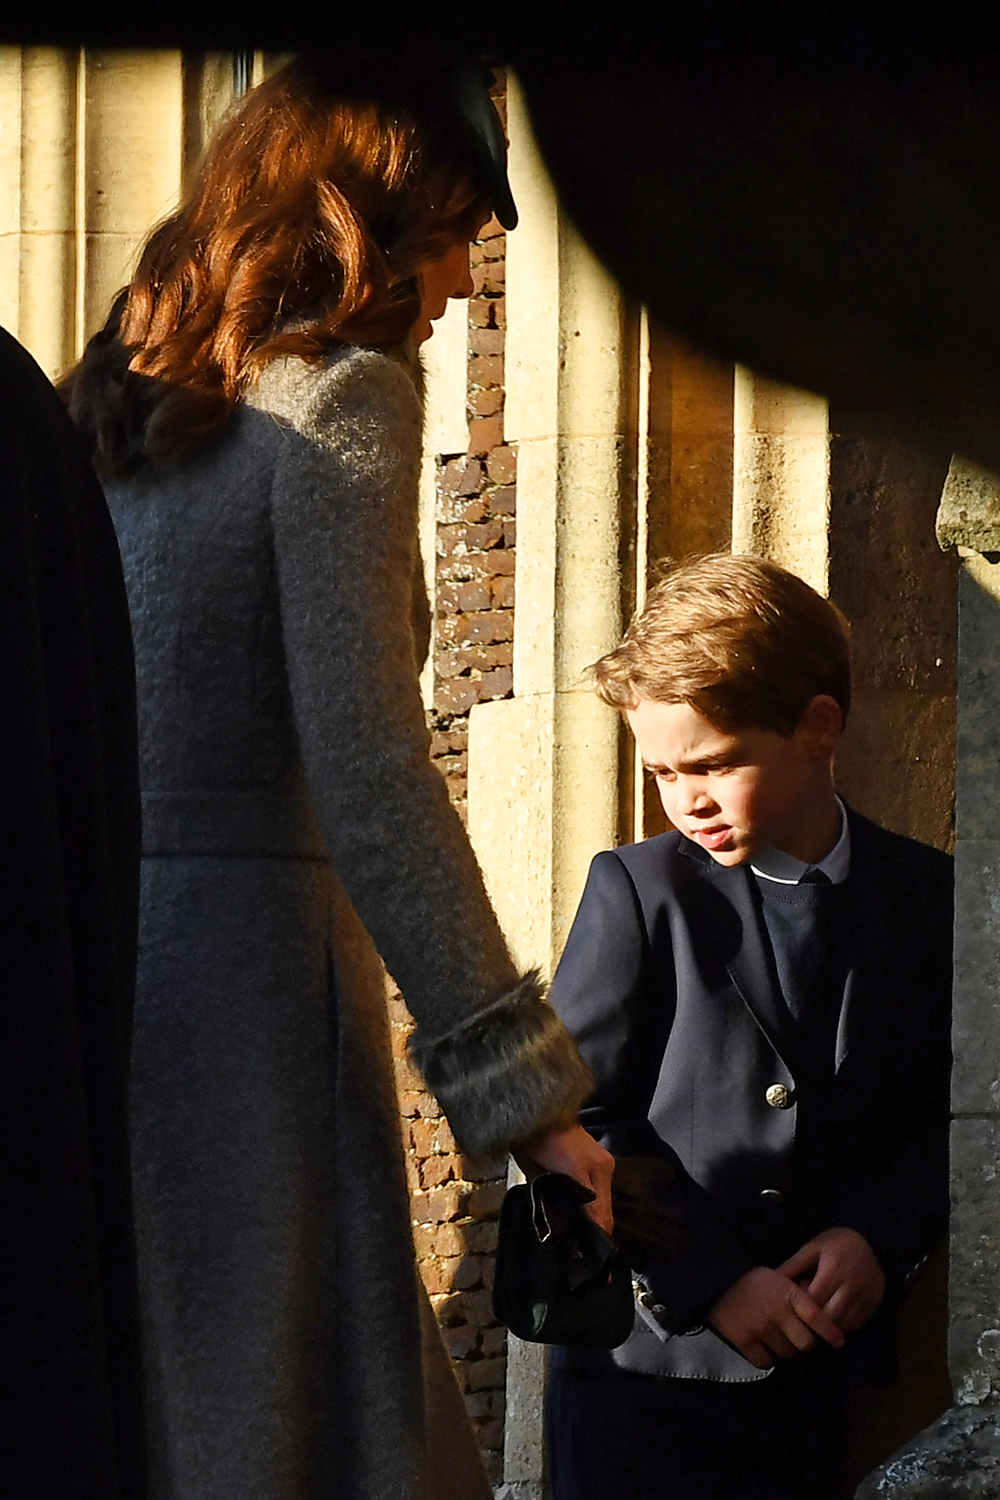 Britain's Prince George of Cambridge (R) and his mother Britain's Catherine, Duchess of Cambridge arrive for the Royal Family's traditional Christmas Day service at St Mary Magdalene Church in Sandri ngham, Norfolk, eastern England, on December 25, 2019. (Photo by Ben STANSALL / AFP) (Photo by BEN STANSALL/AFP via Getty Images)